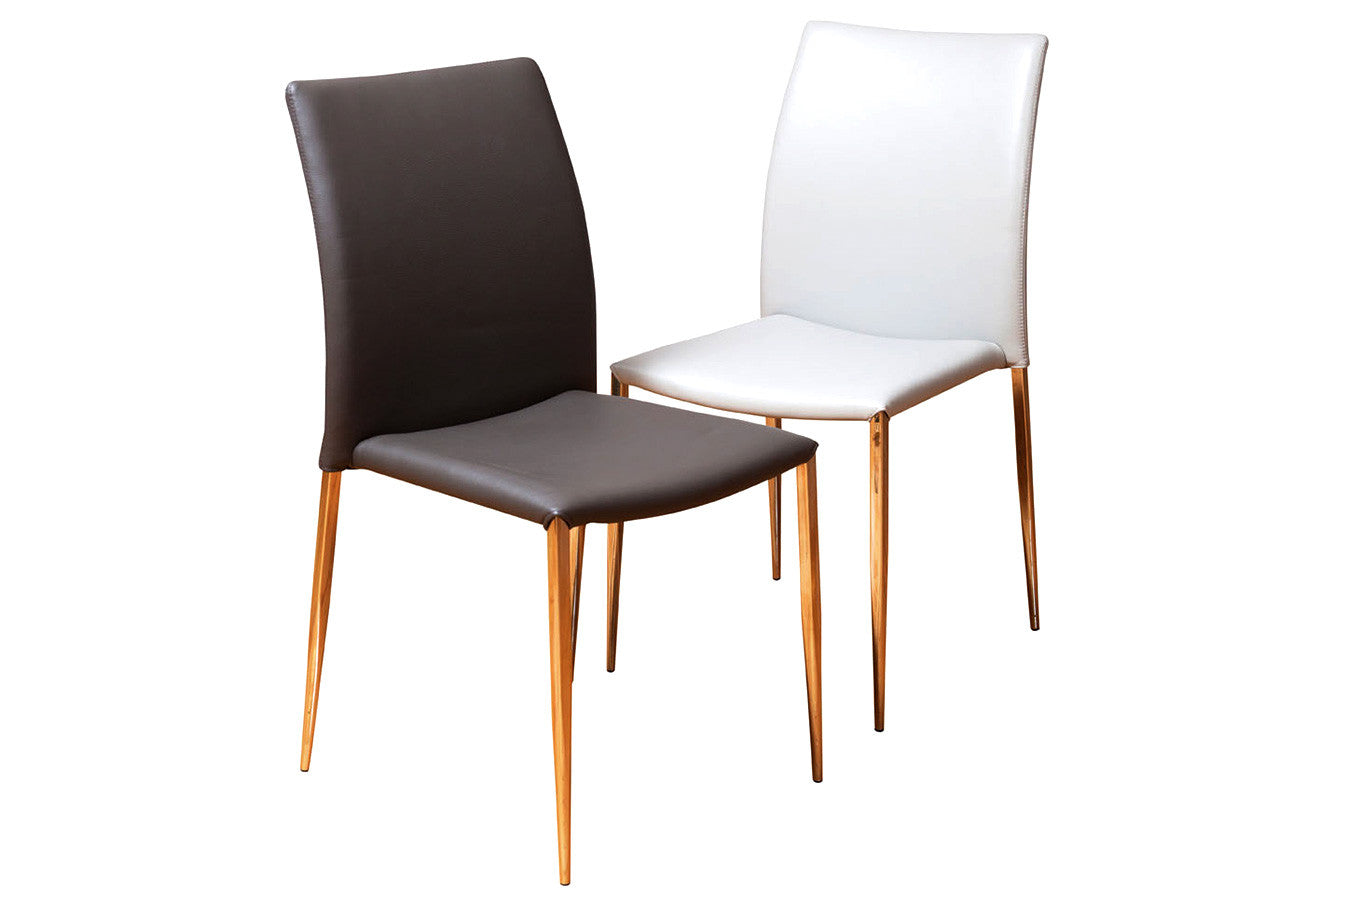 Fully Upholstered Leather Dining Chairs with Steel Base  : fully upholstered leather dining chairs steel timber base from bespokefurnitureperth.com.au size 1348 x 899 jpeg 51kB